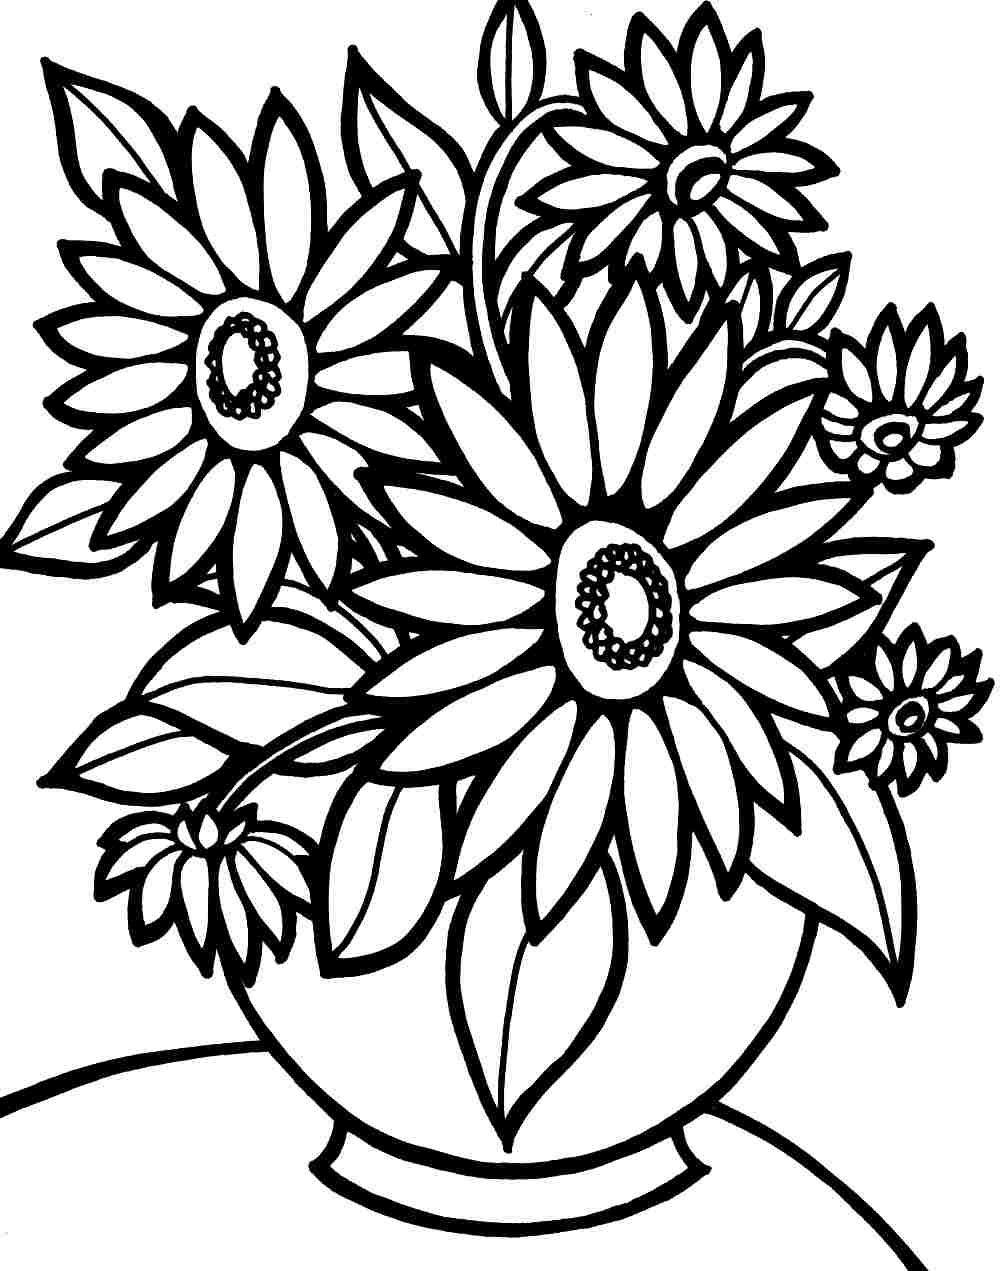 Free coloring pages preschool flower - Flower Coloring Pages Preschool Flower Coloring Printable Sheets Special